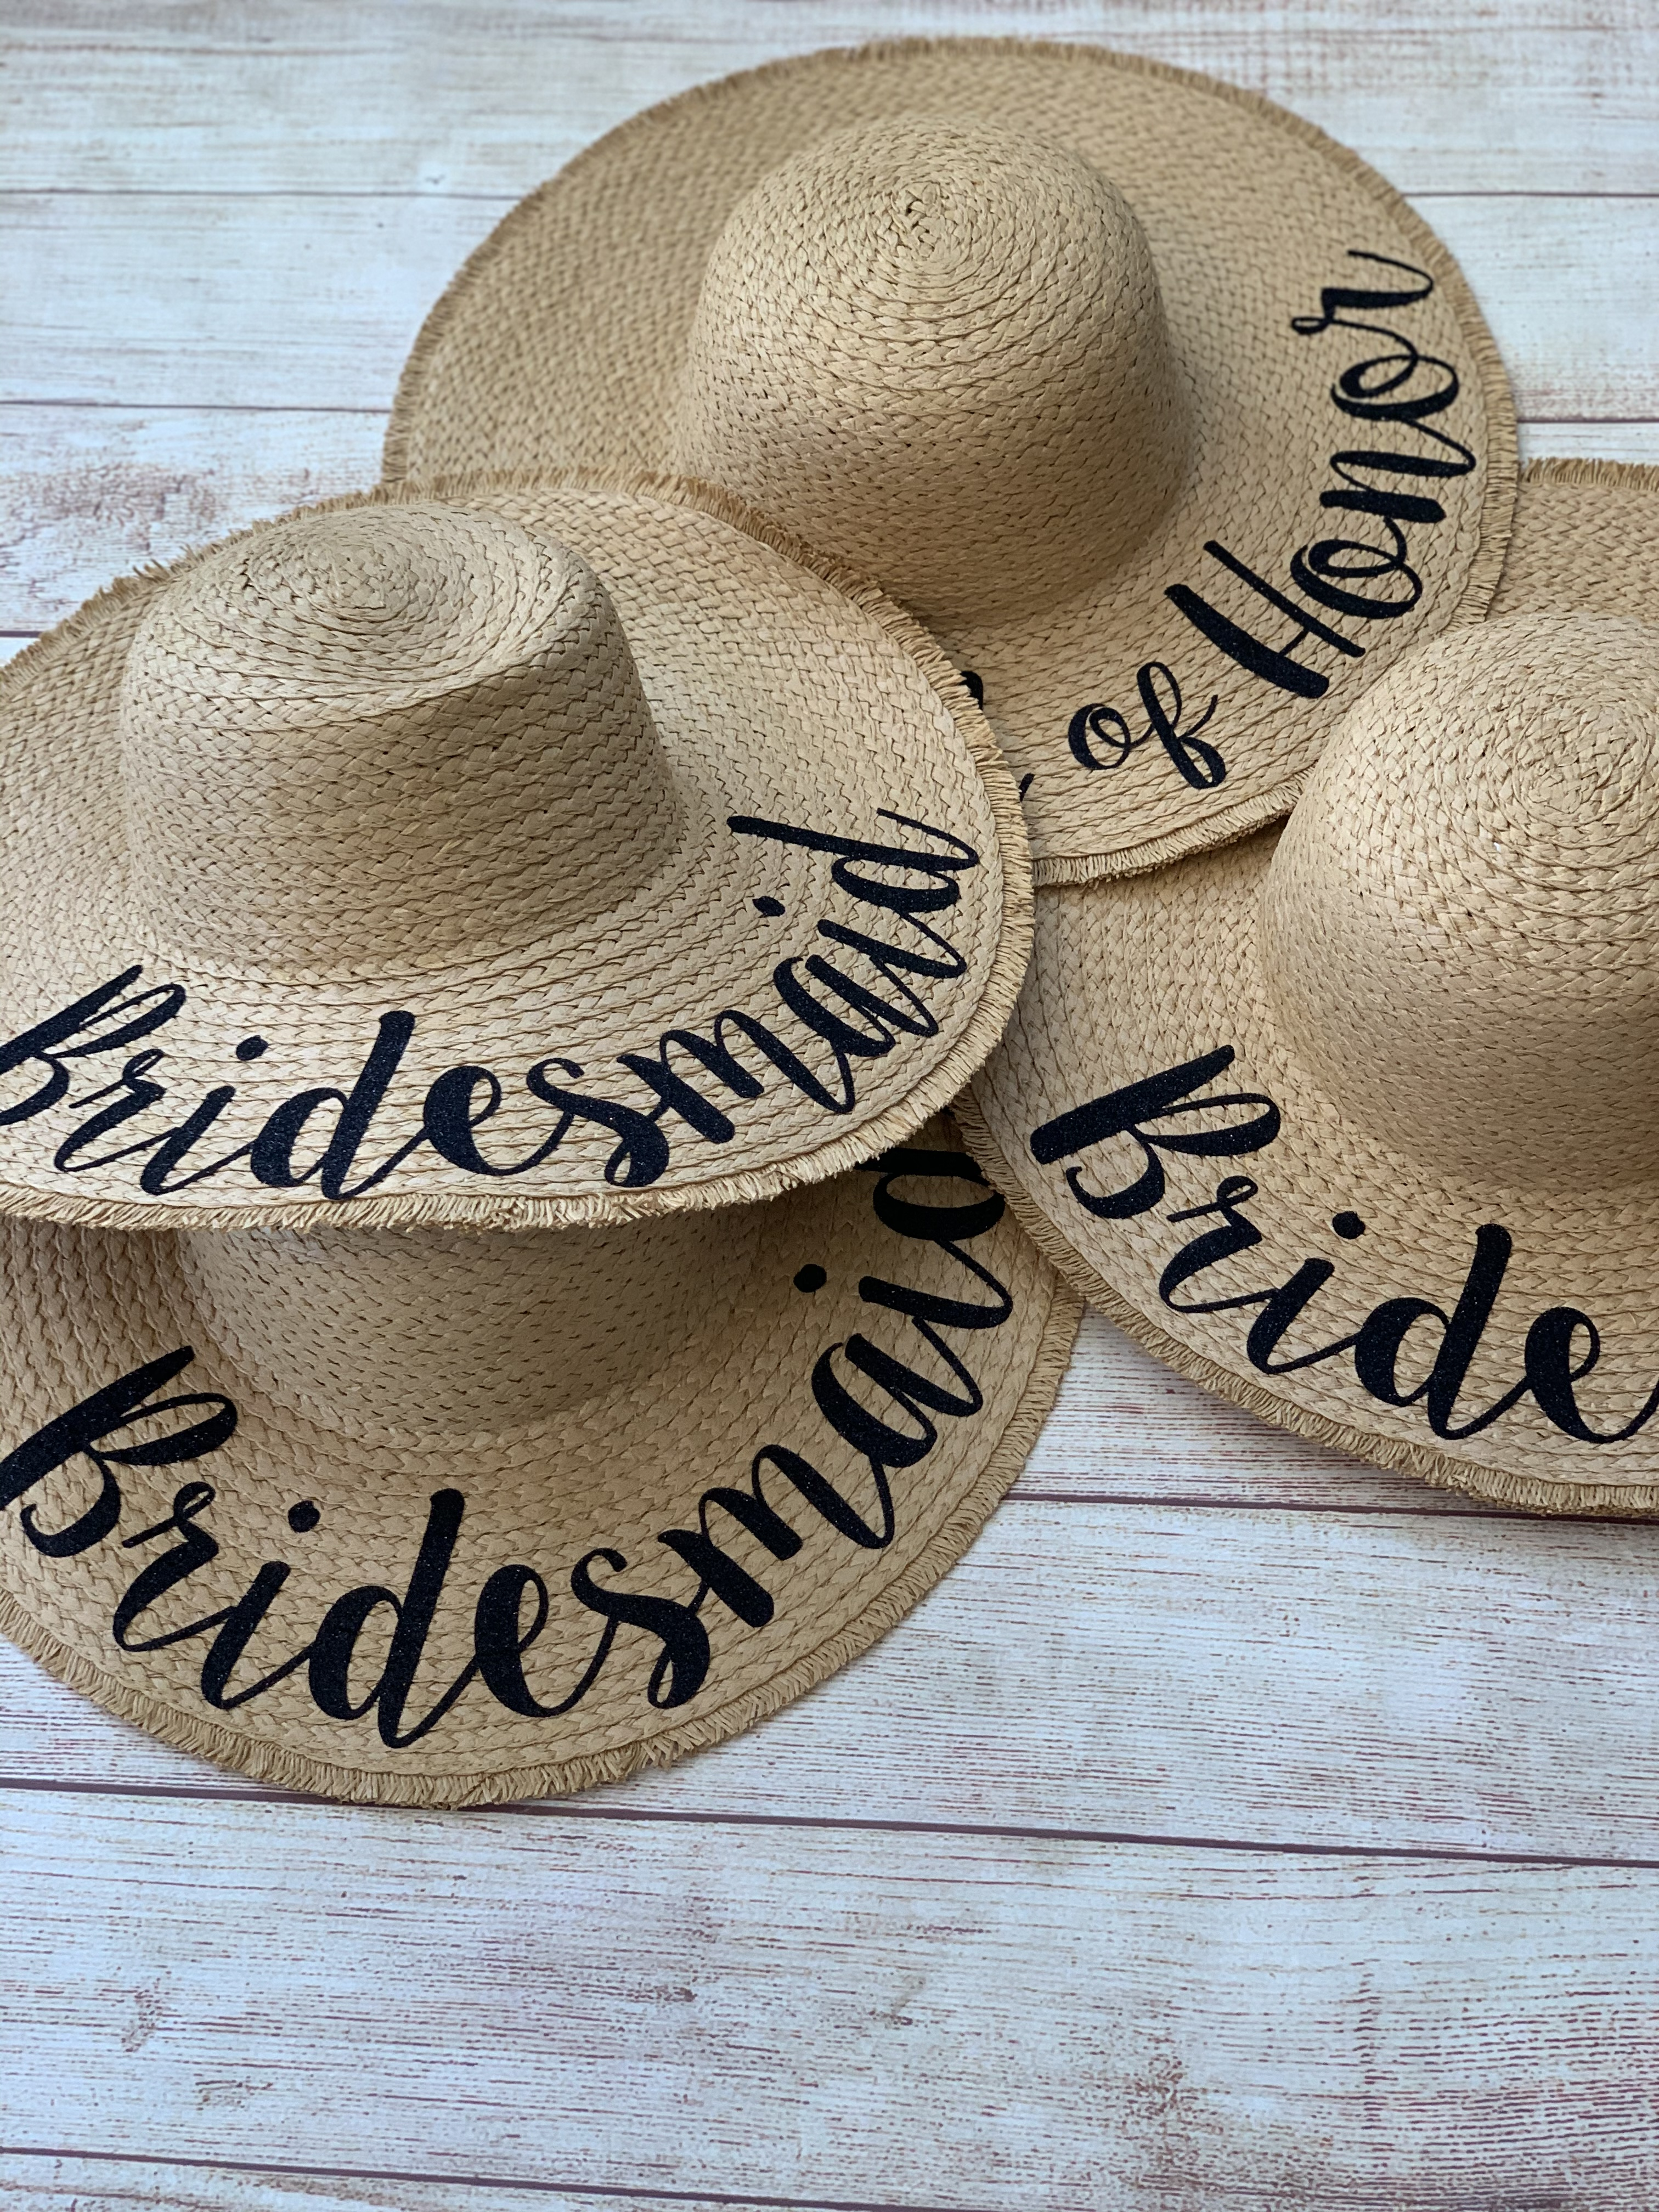 Destination wedding? Treat the team to hats for the occasion. Tan with black glitter. by Wicked Stitches Gifts